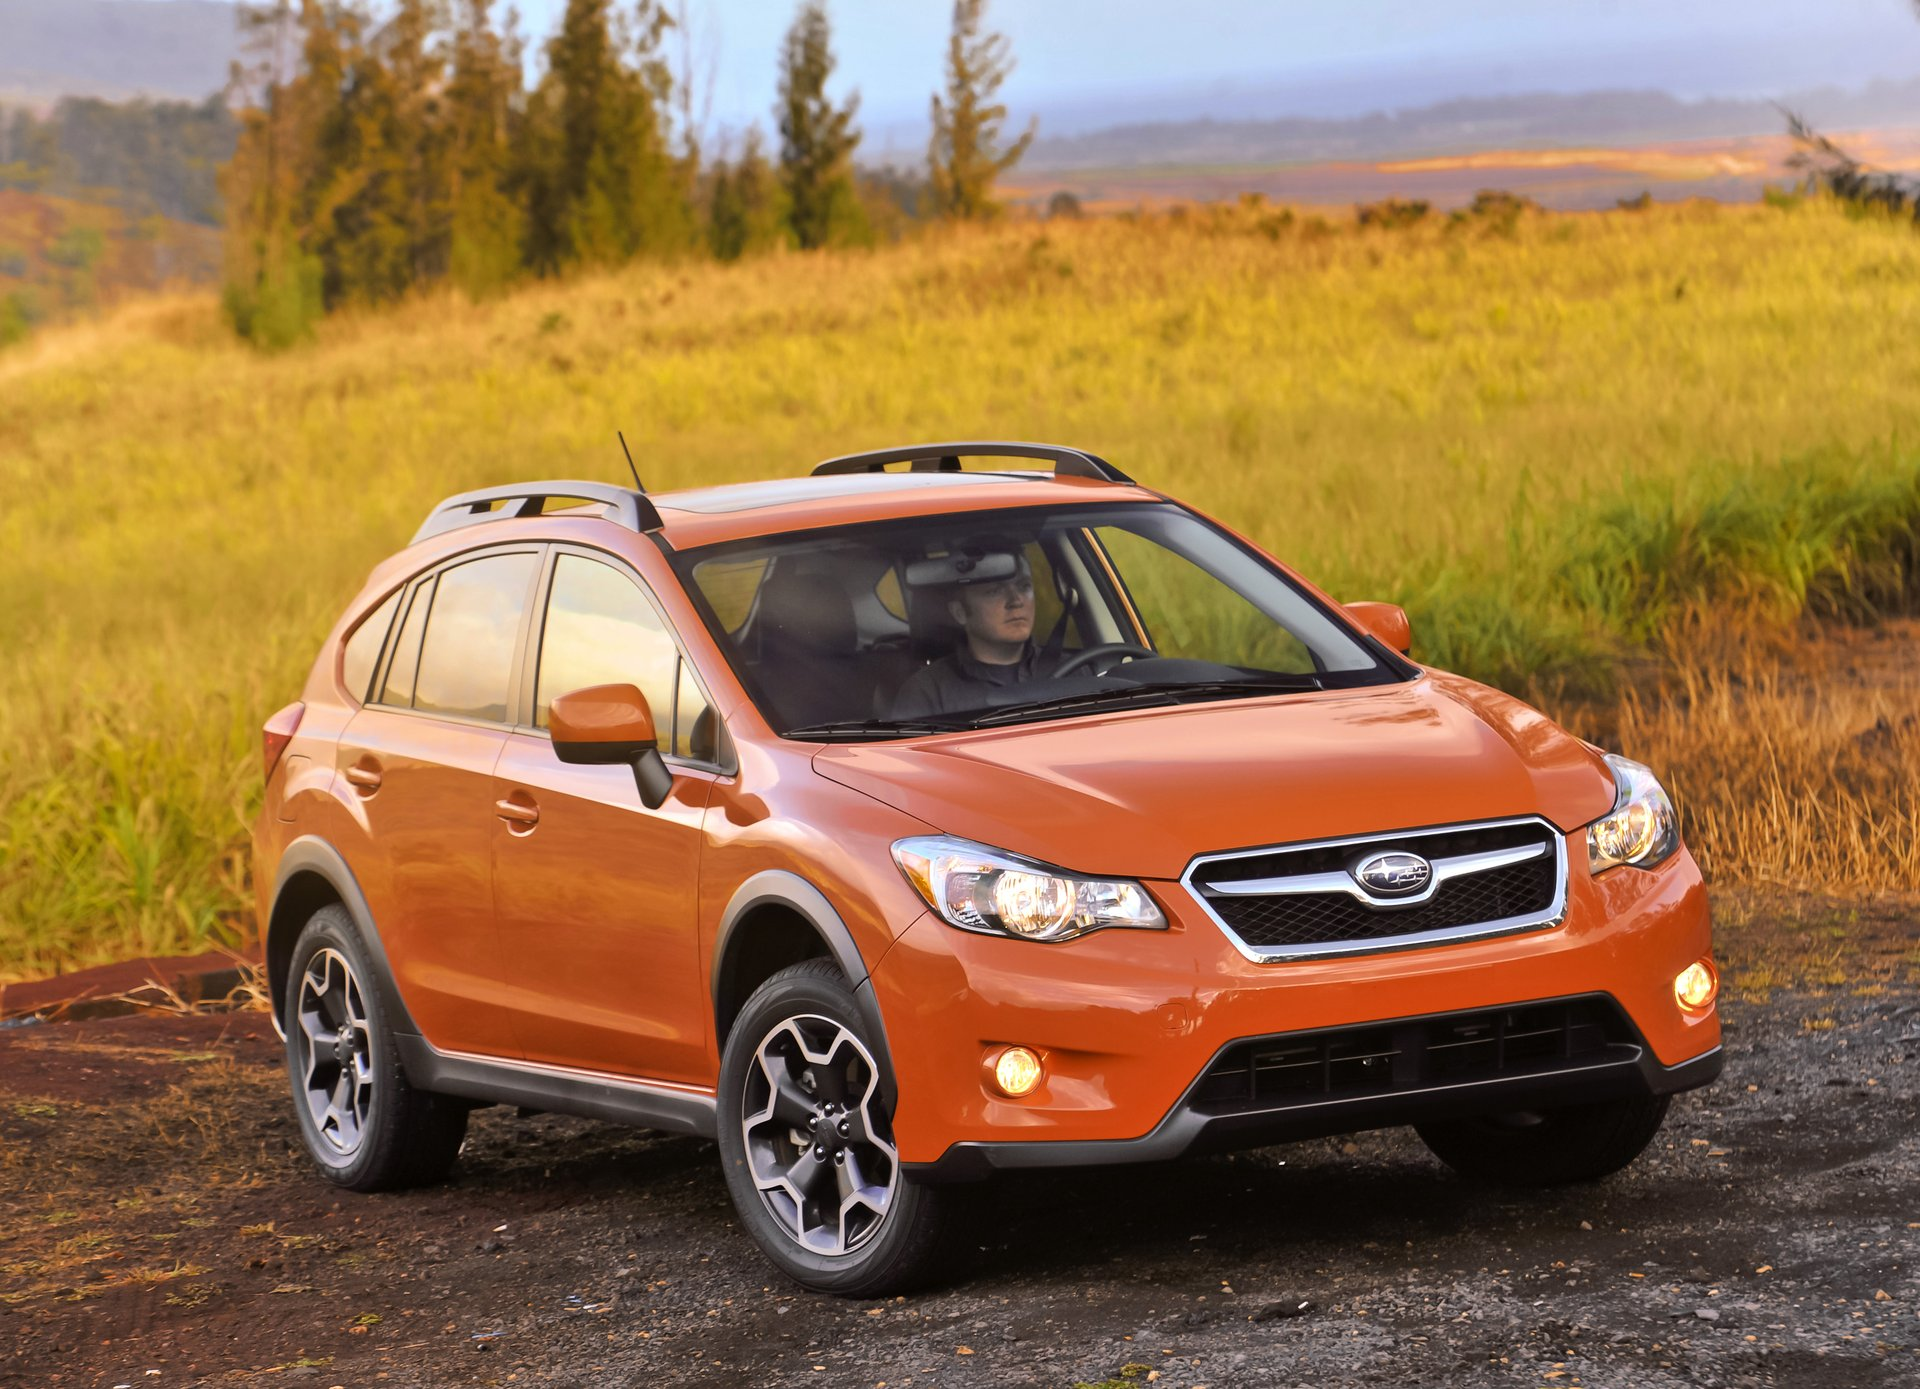 2015 subaru xv crosstrek performance review the car connection. Black Bedroom Furniture Sets. Home Design Ideas